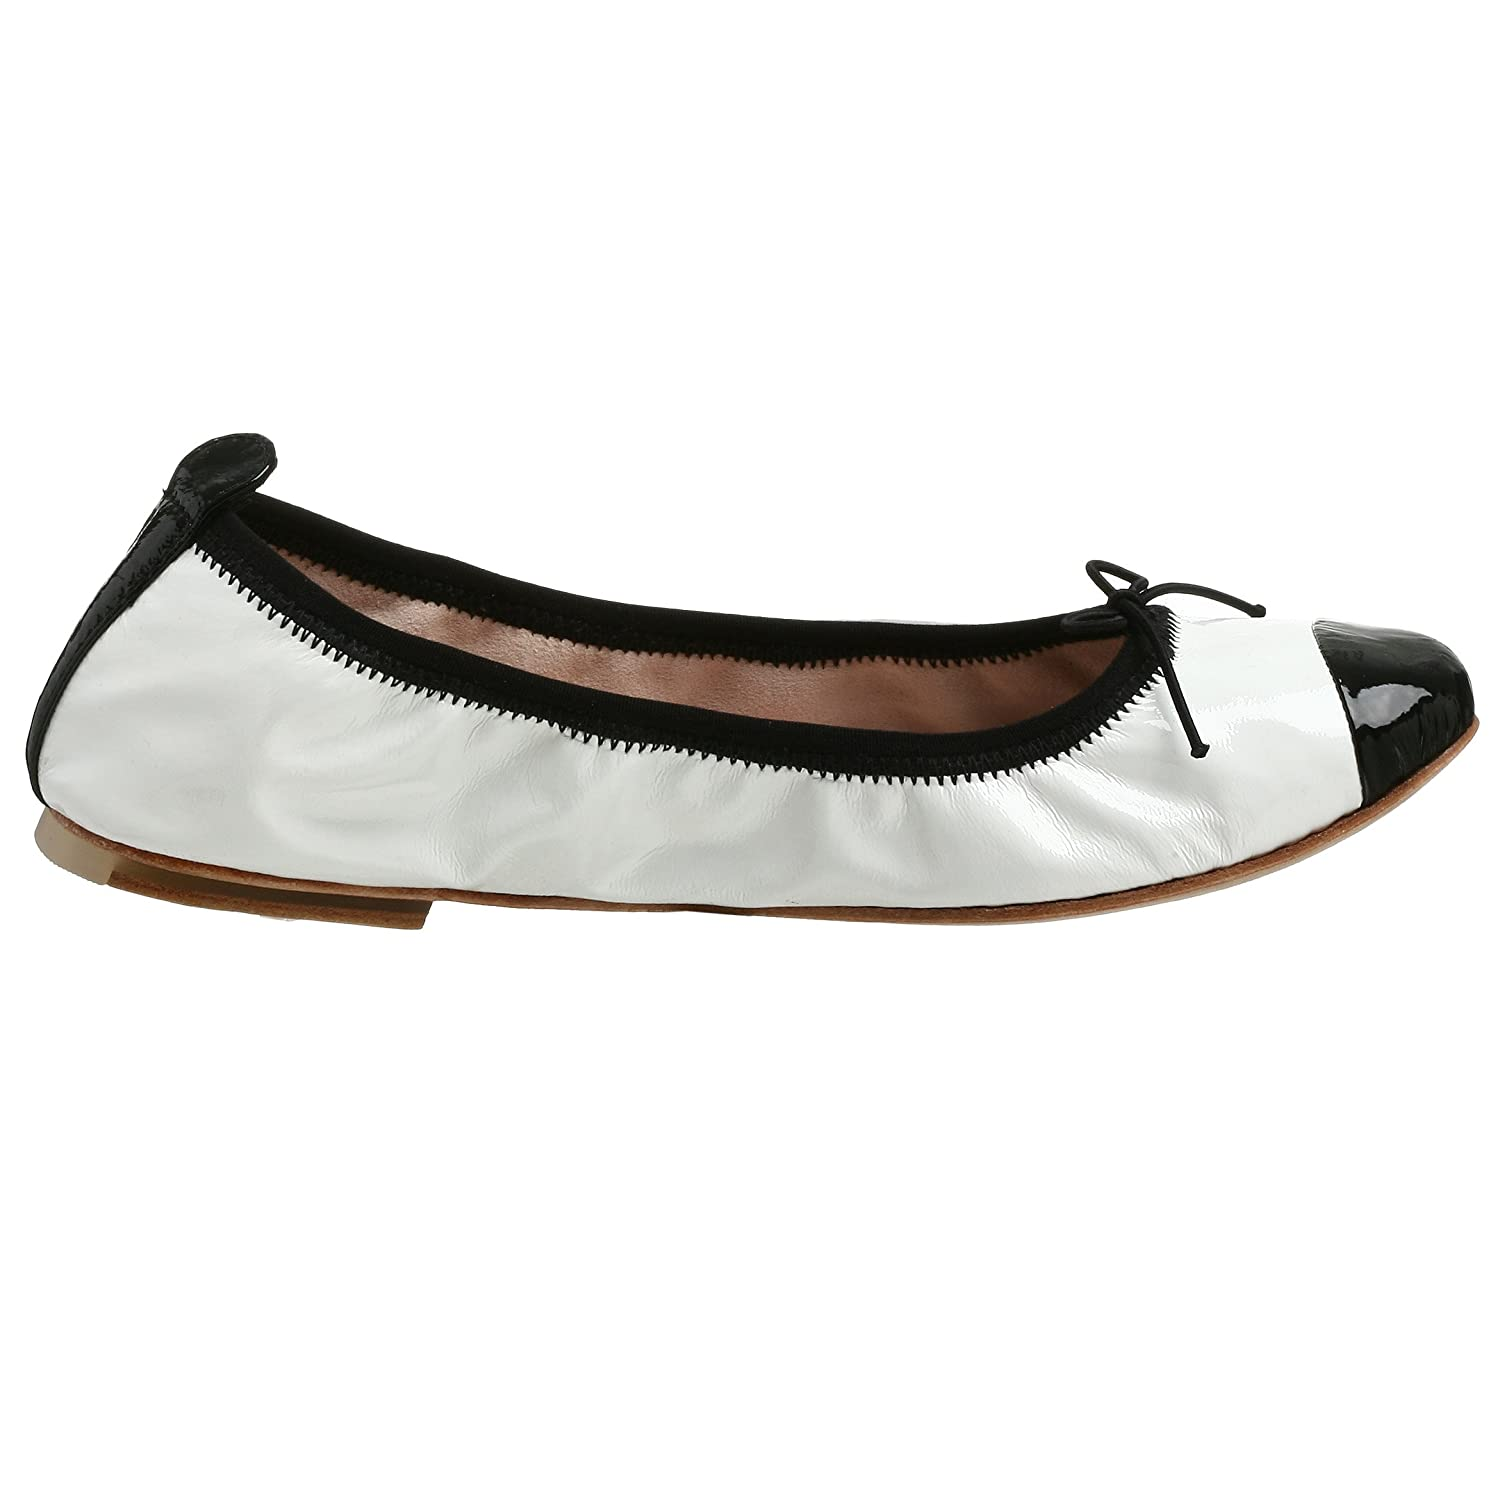 Bloch London Luxury Ballet Flat Ballet Flat - Free Overnight Shipping & Return Shipping: Endless.com